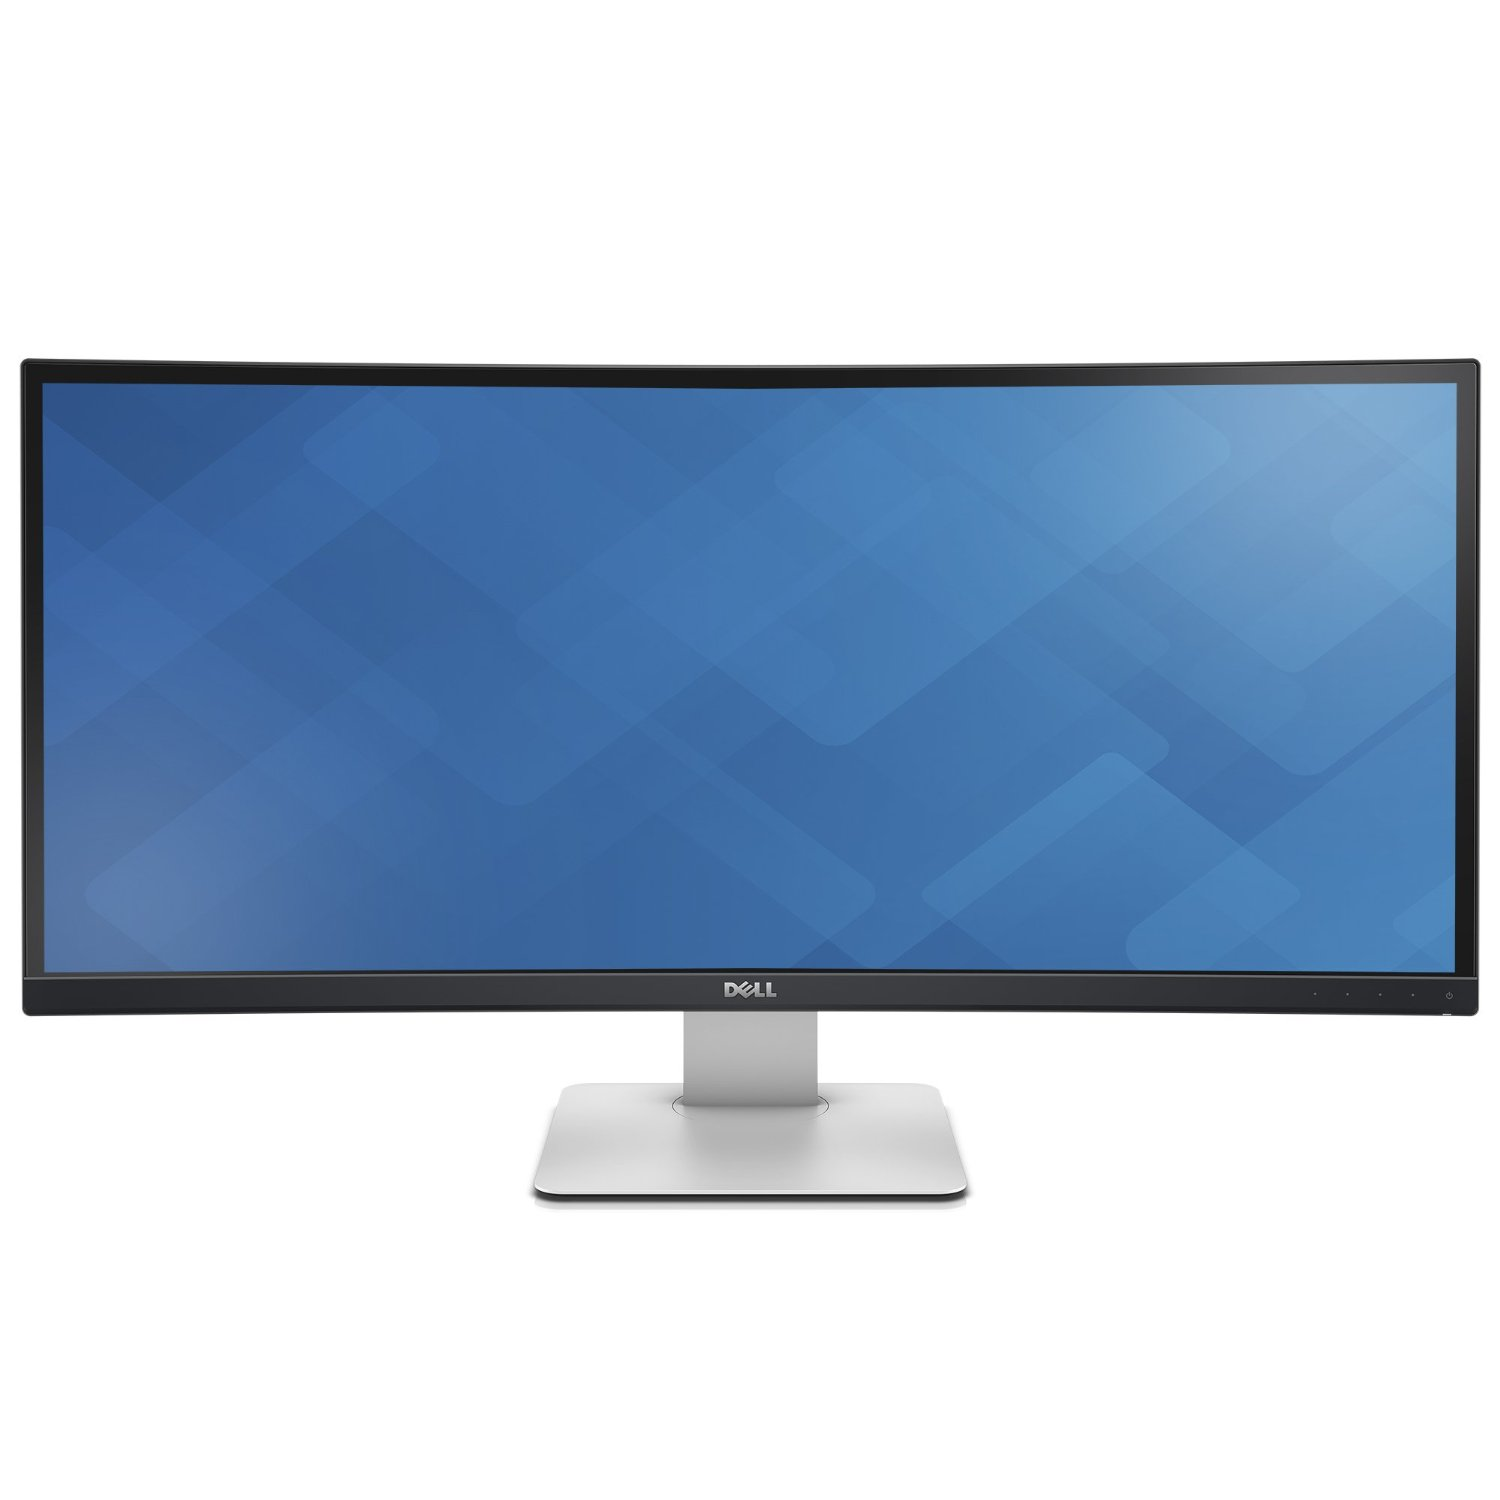 Dell UltraSharp U3415W PXF79 34-Inch Curved LED-Lit Monitor